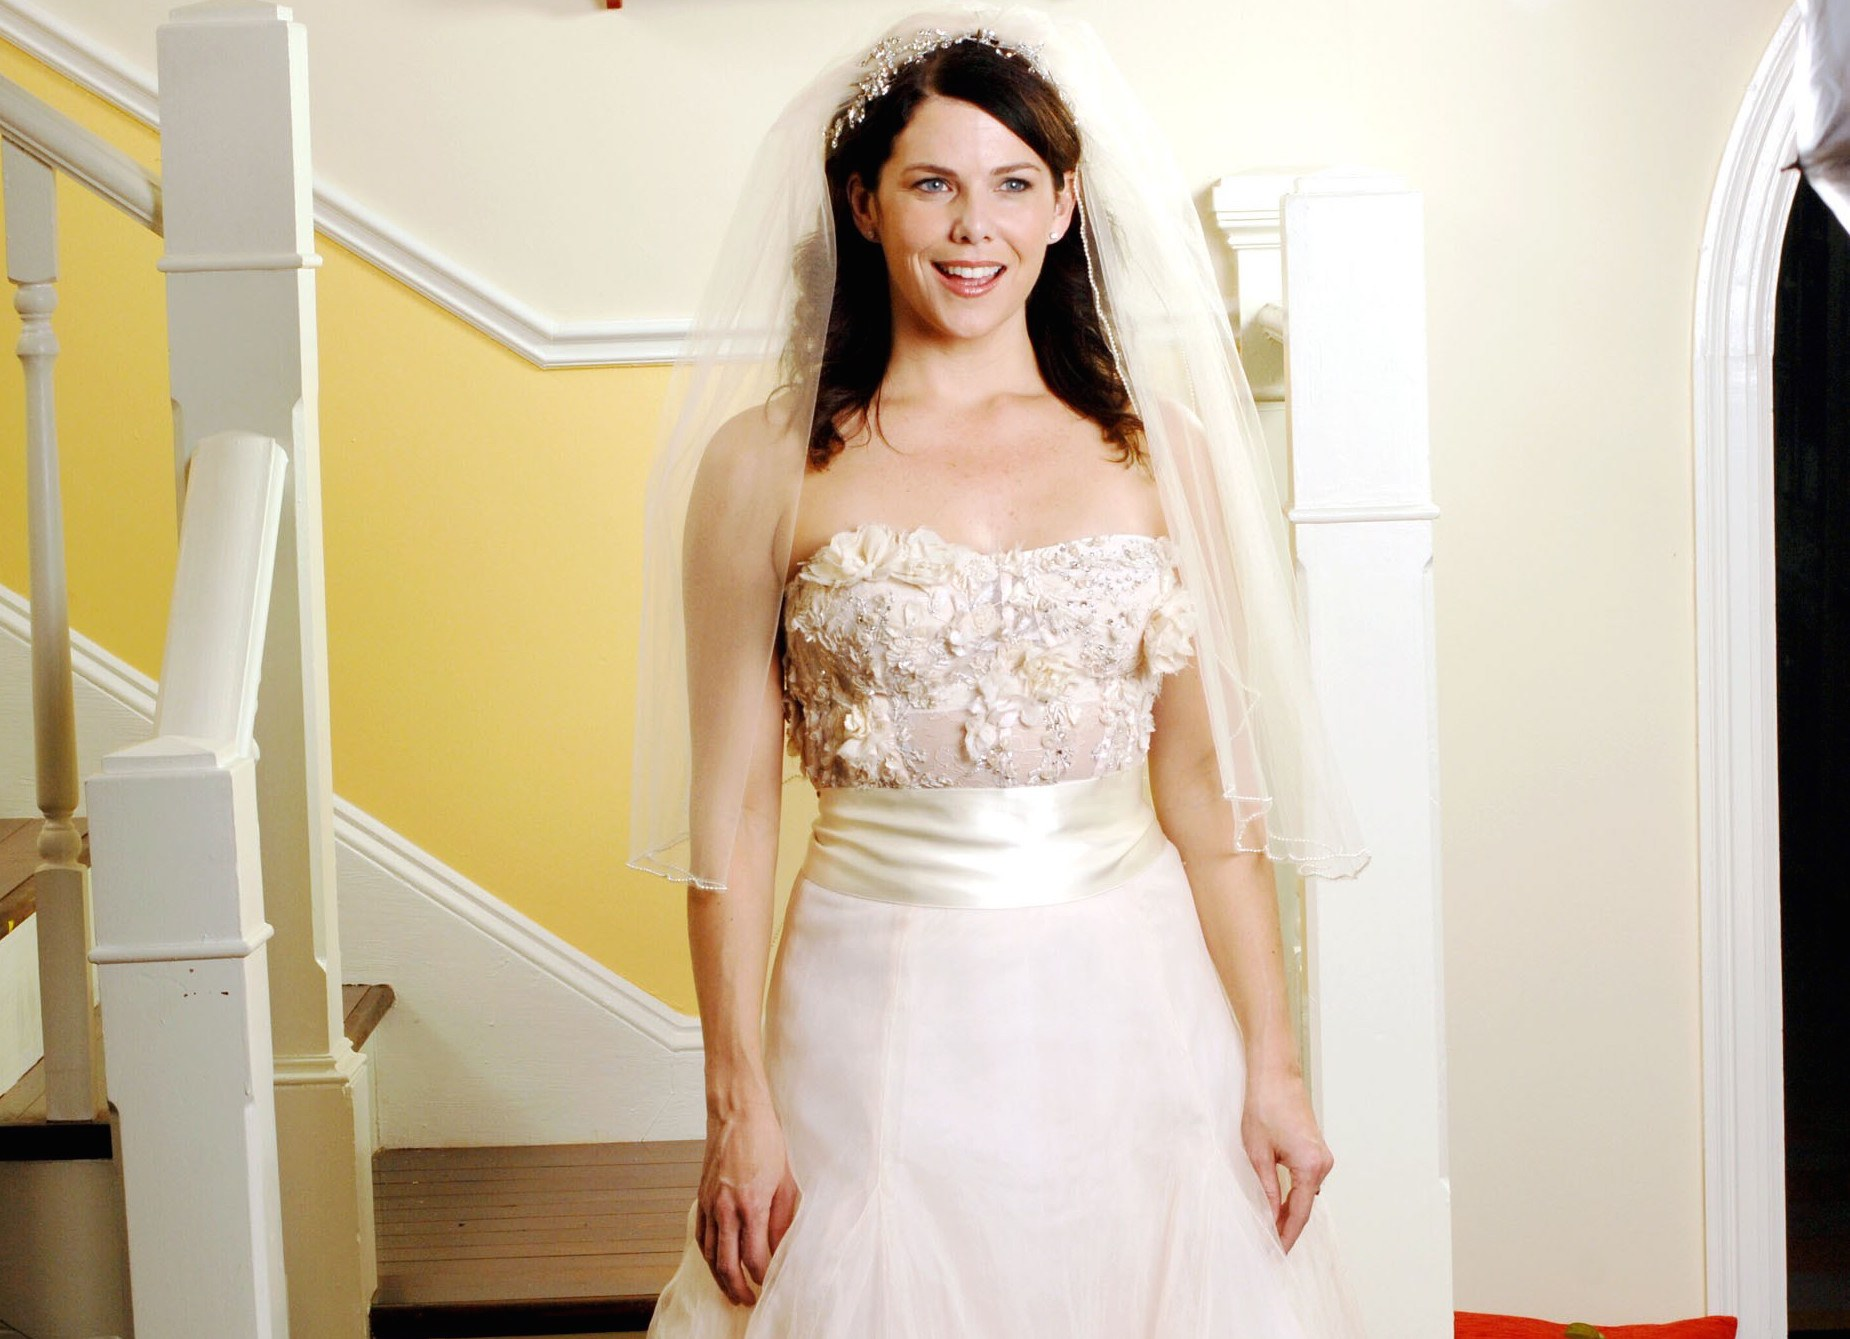 What nobody tells you about shopping for a wedding dress